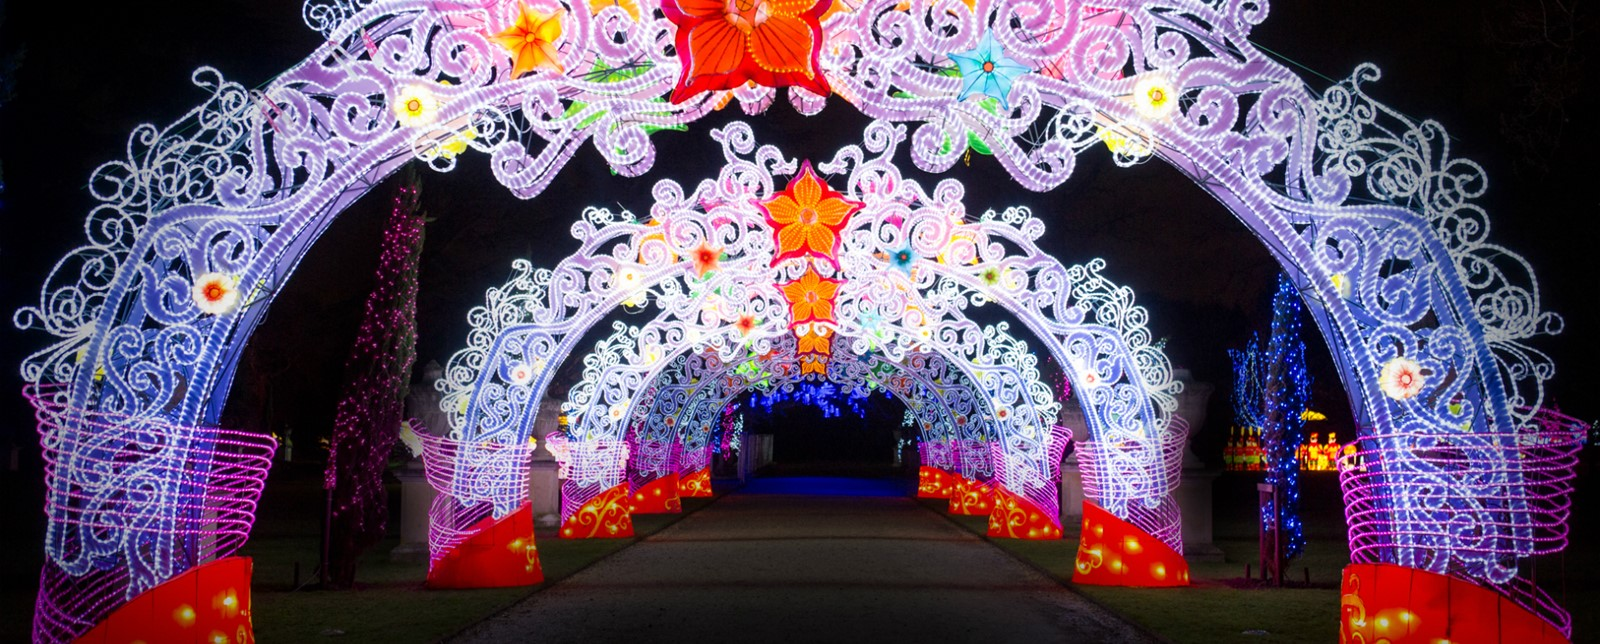 A row of illuminated arches at the Magical Lantern Festival